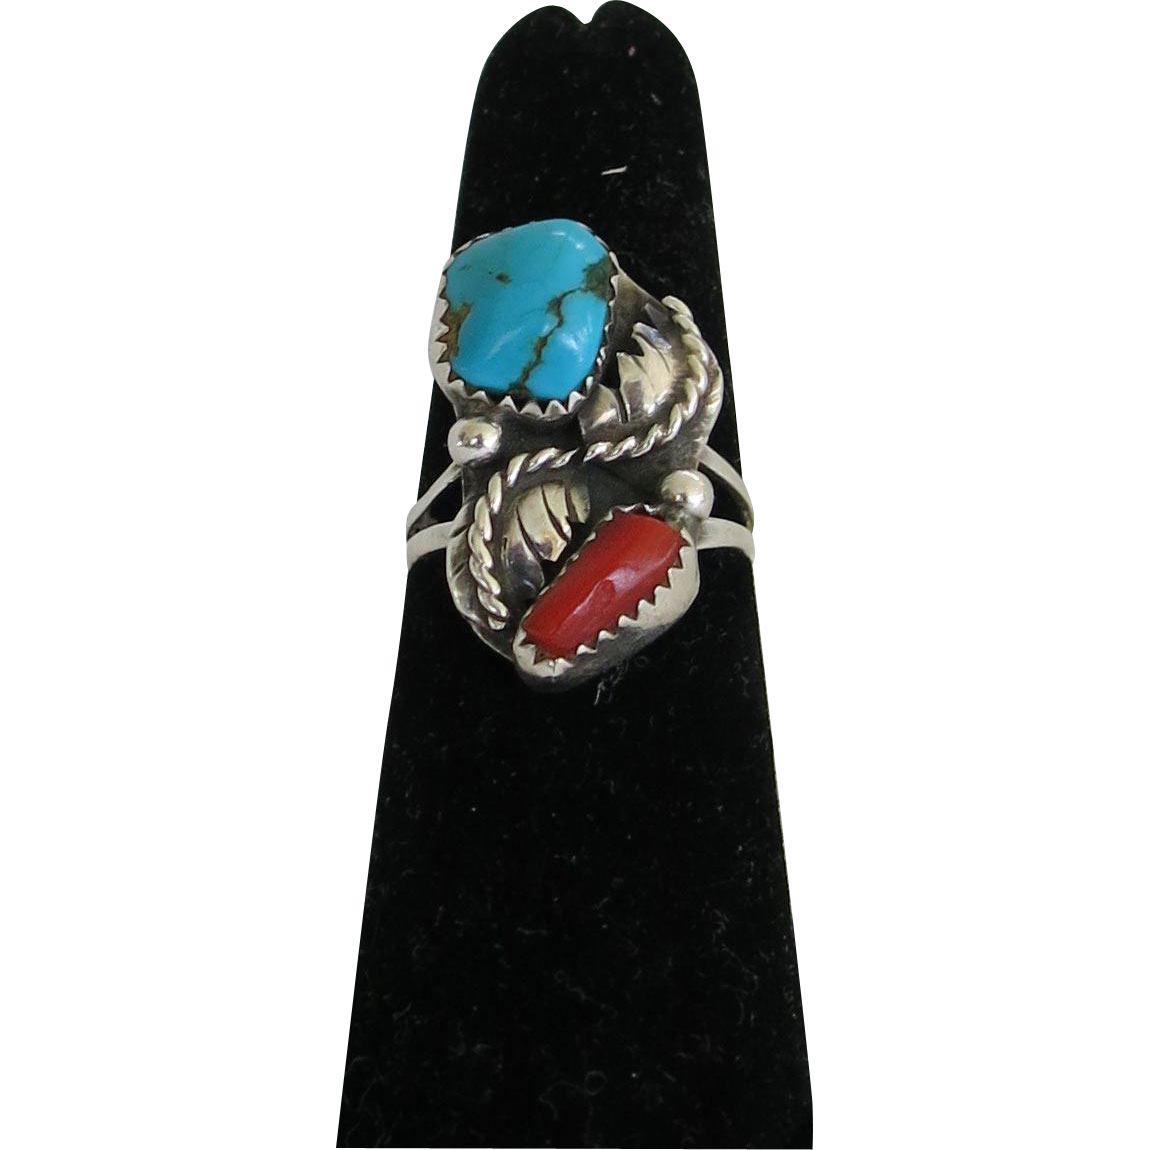 Vintage Turquoise Coral Sterling Silver Ring Size 6.25 SS